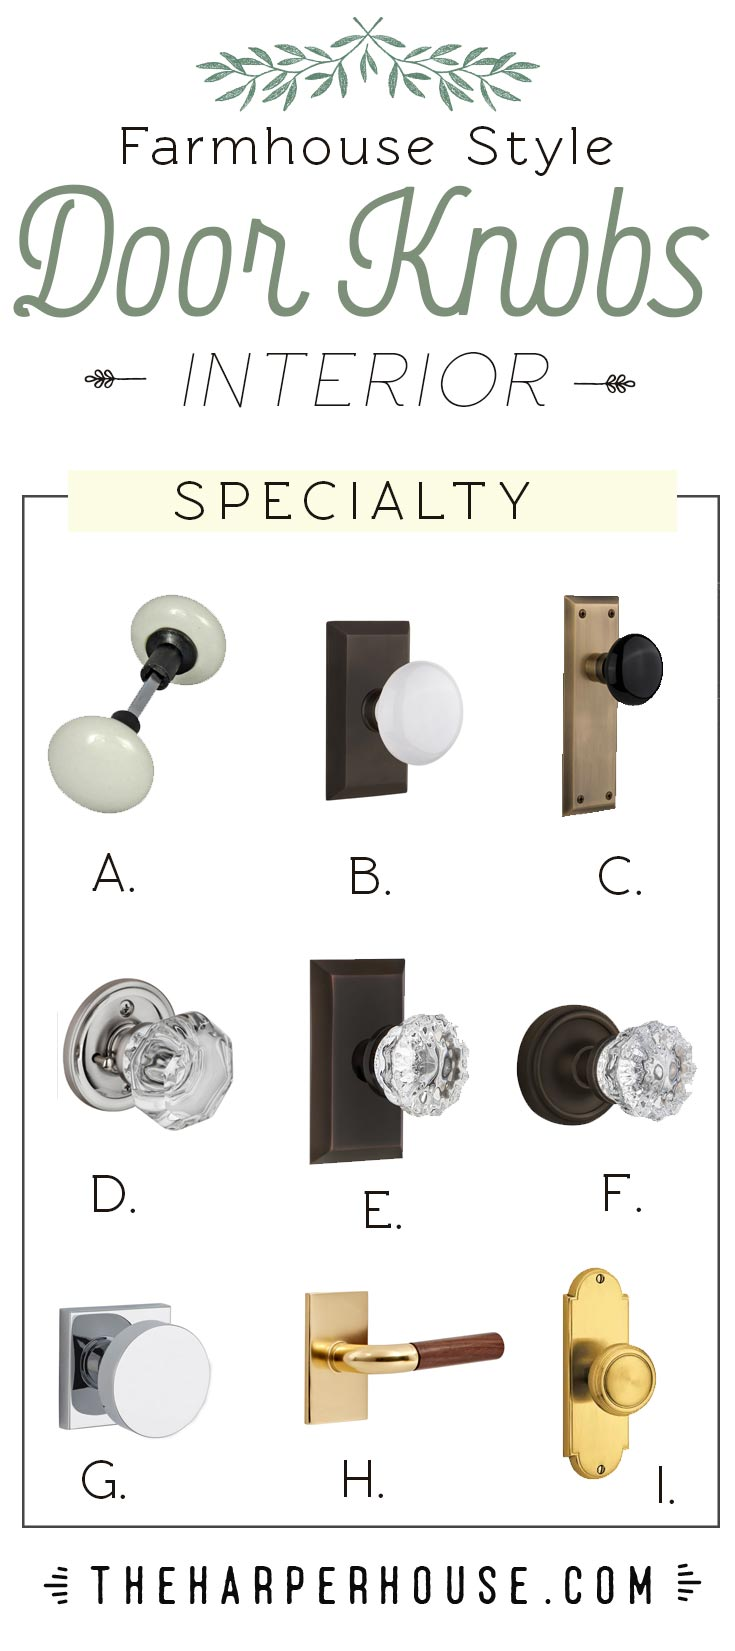 Roundup of glass, crystal, porcelain, and brass door knobs to help you get the modern farmhouse look in your home